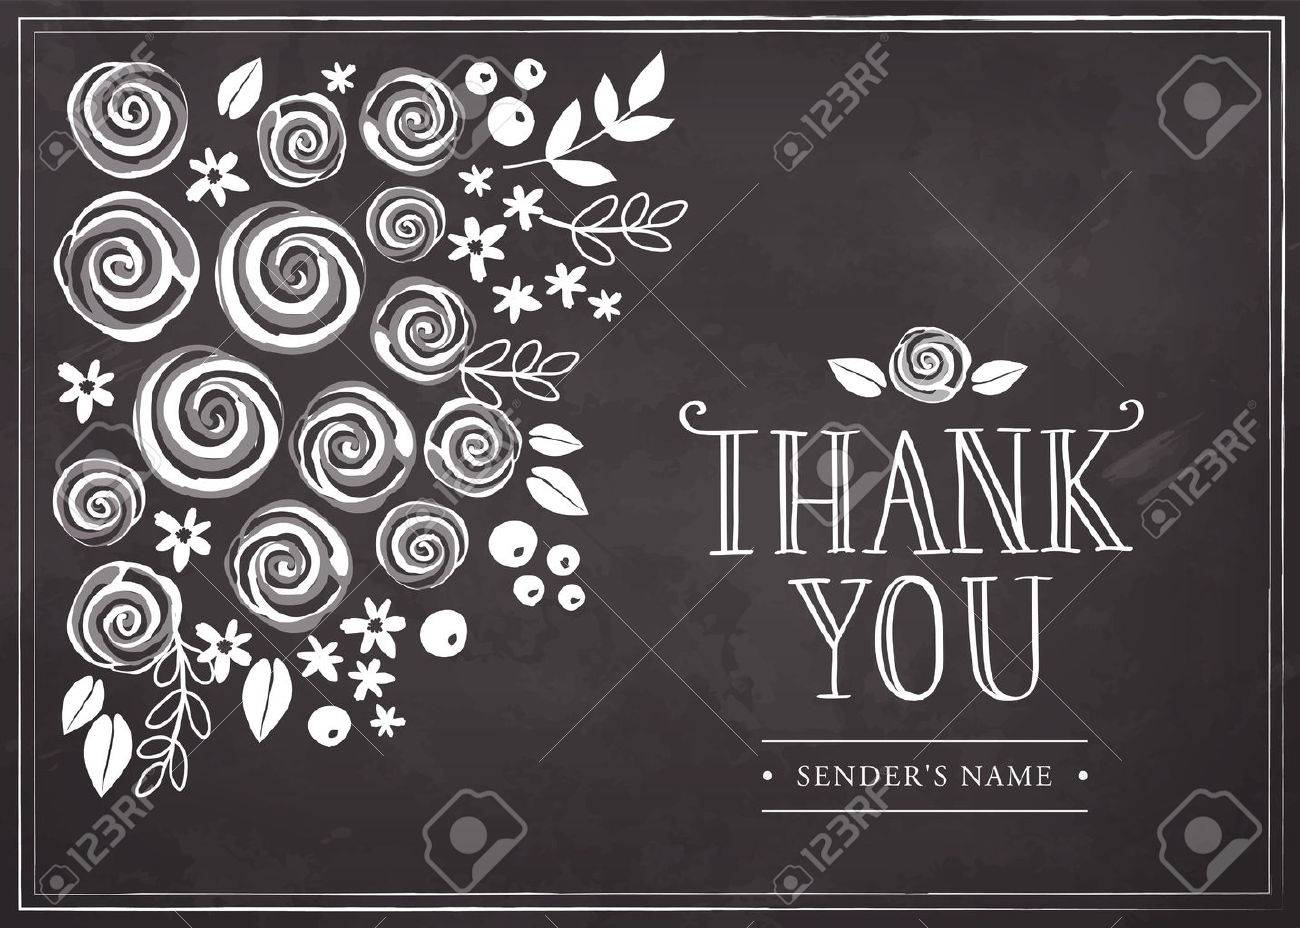 thank you card with floral background freehand drawing on a